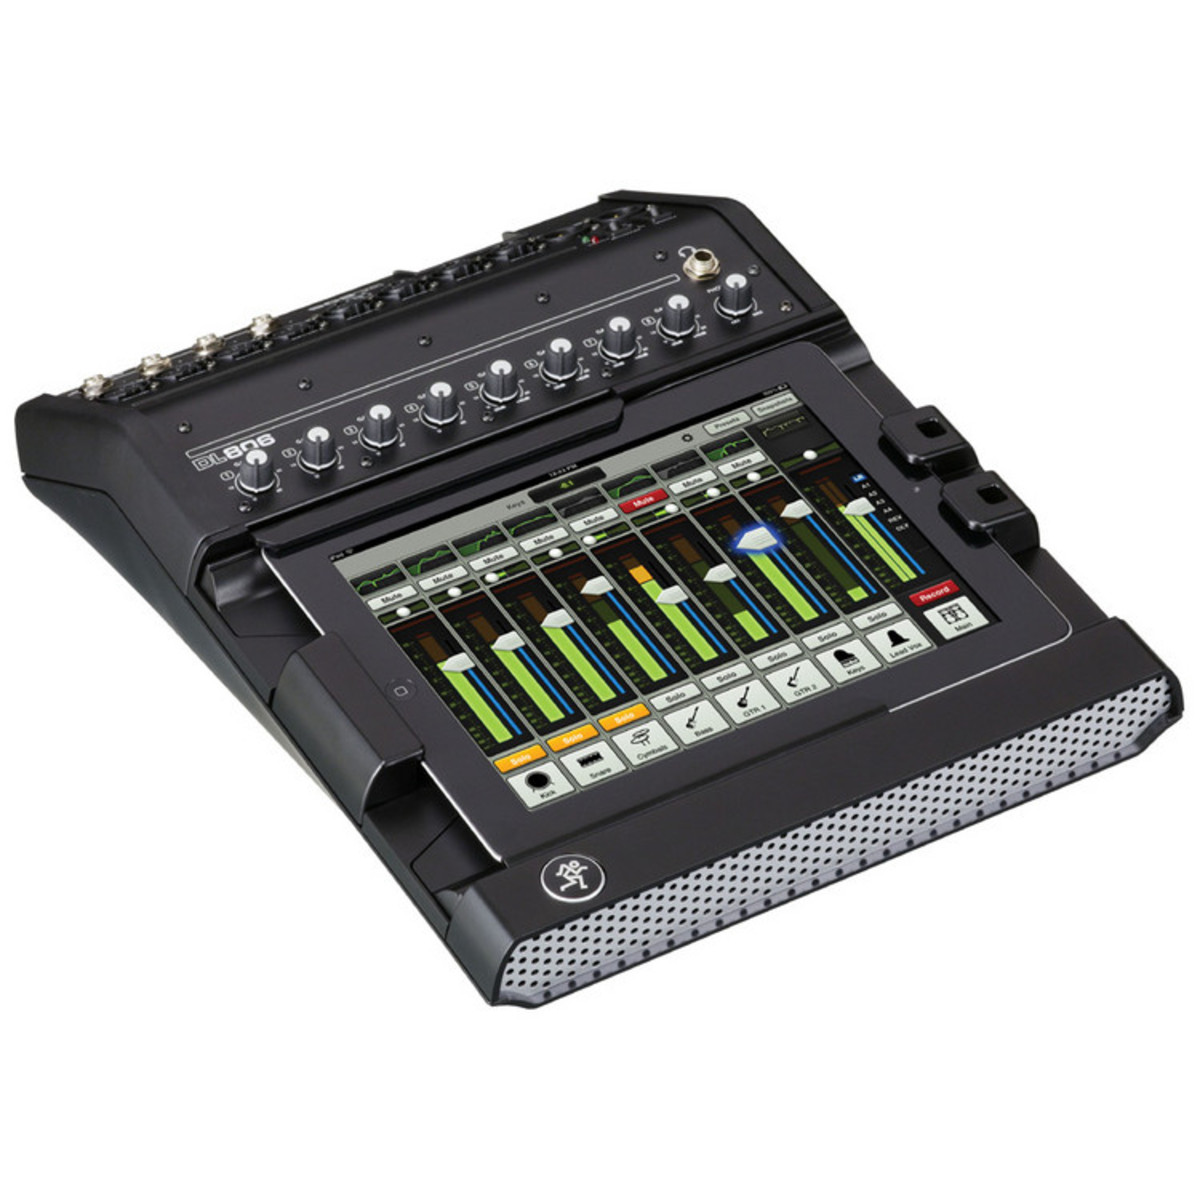 mackie dl806 digital live sound mixer with 30 pin ipad control at gear4music. Black Bedroom Furniture Sets. Home Design Ideas